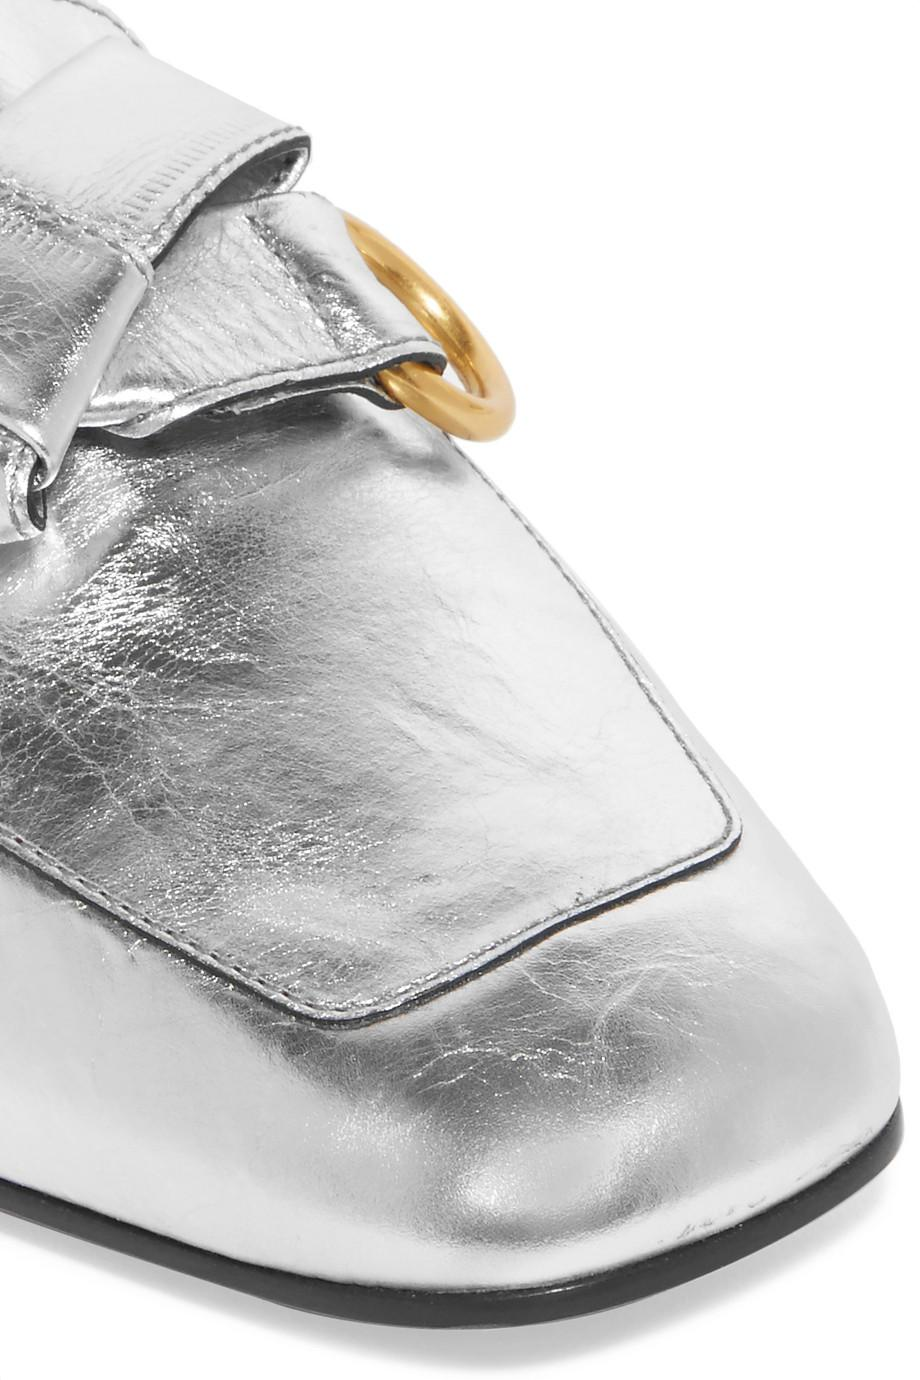 Quincey Collapsible-heel Metallic Leather Loafers - Silver Chlo MZ6HN